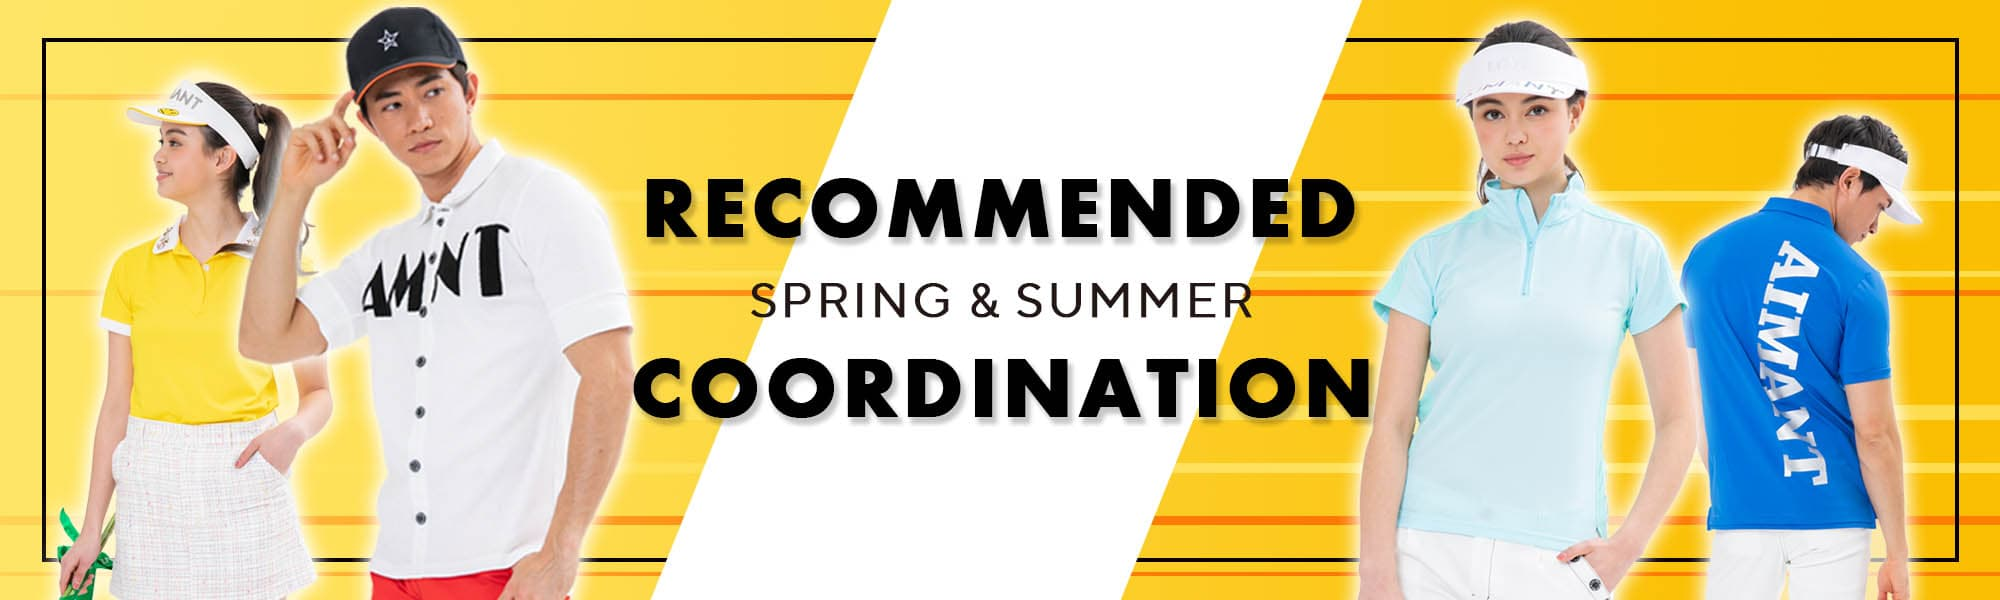 RECOMMENDED CORDINATION SPRING & SUMMER